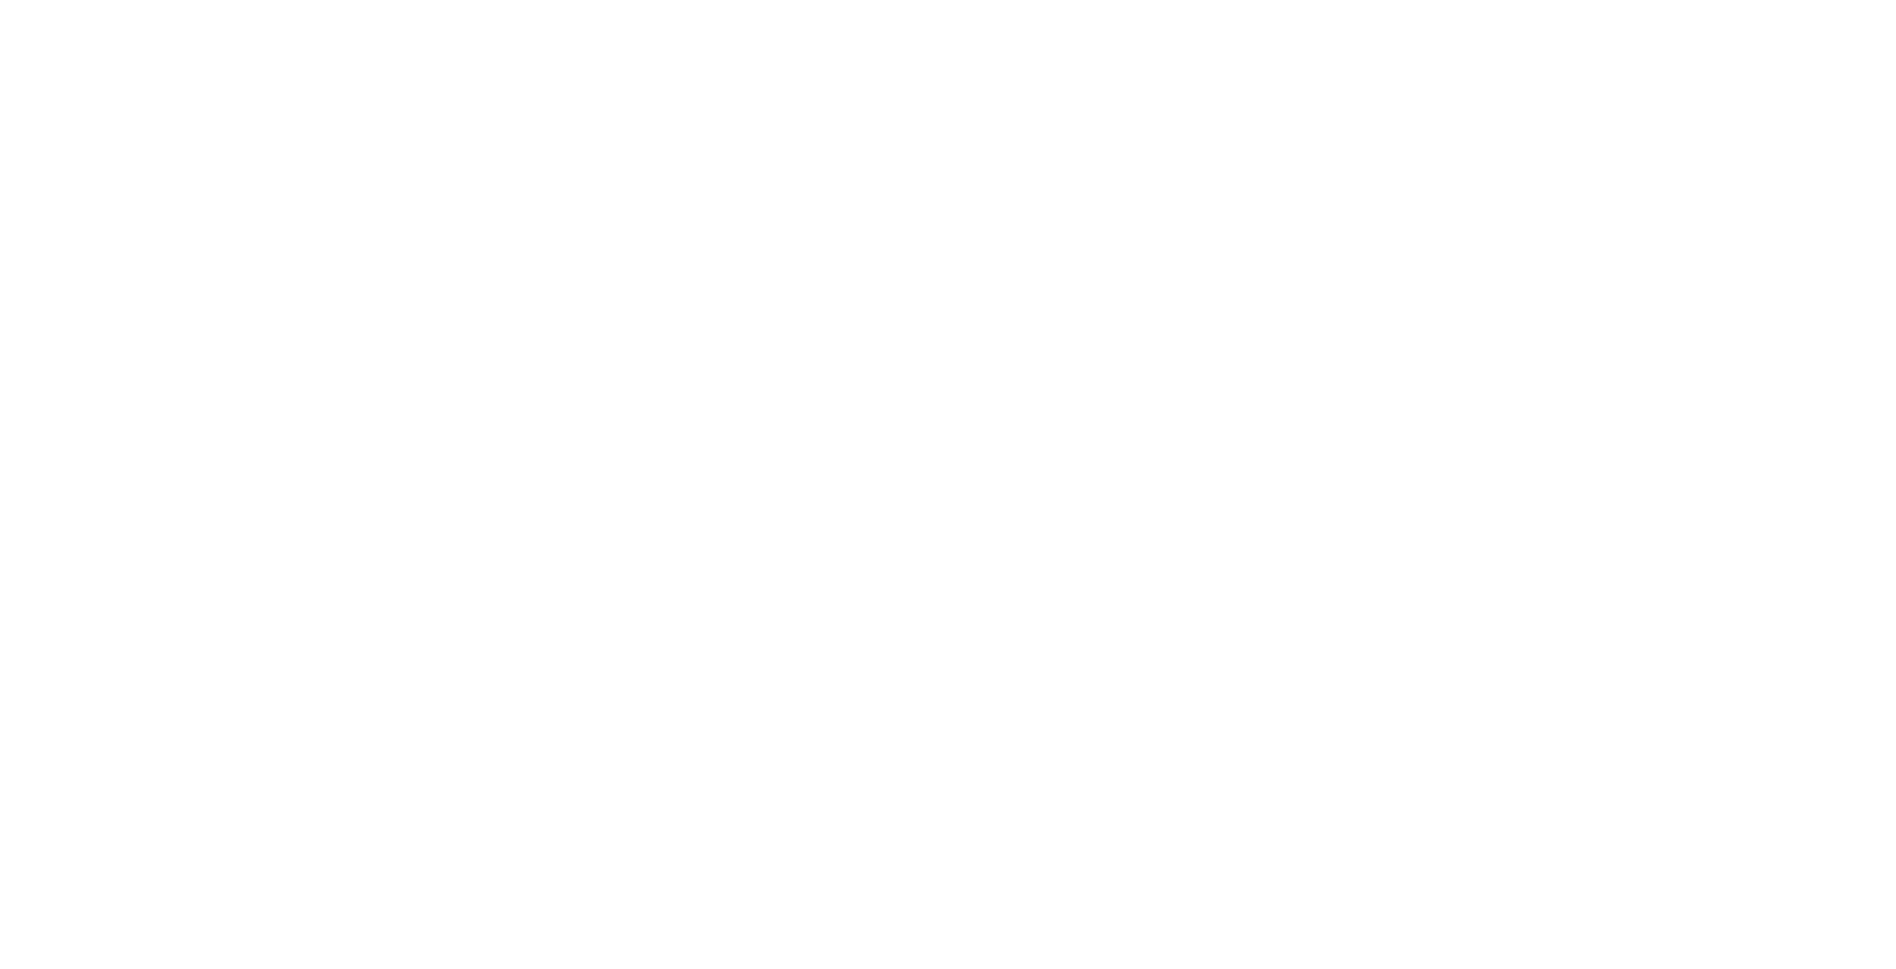 tyler_staples_logo2_vertical_white